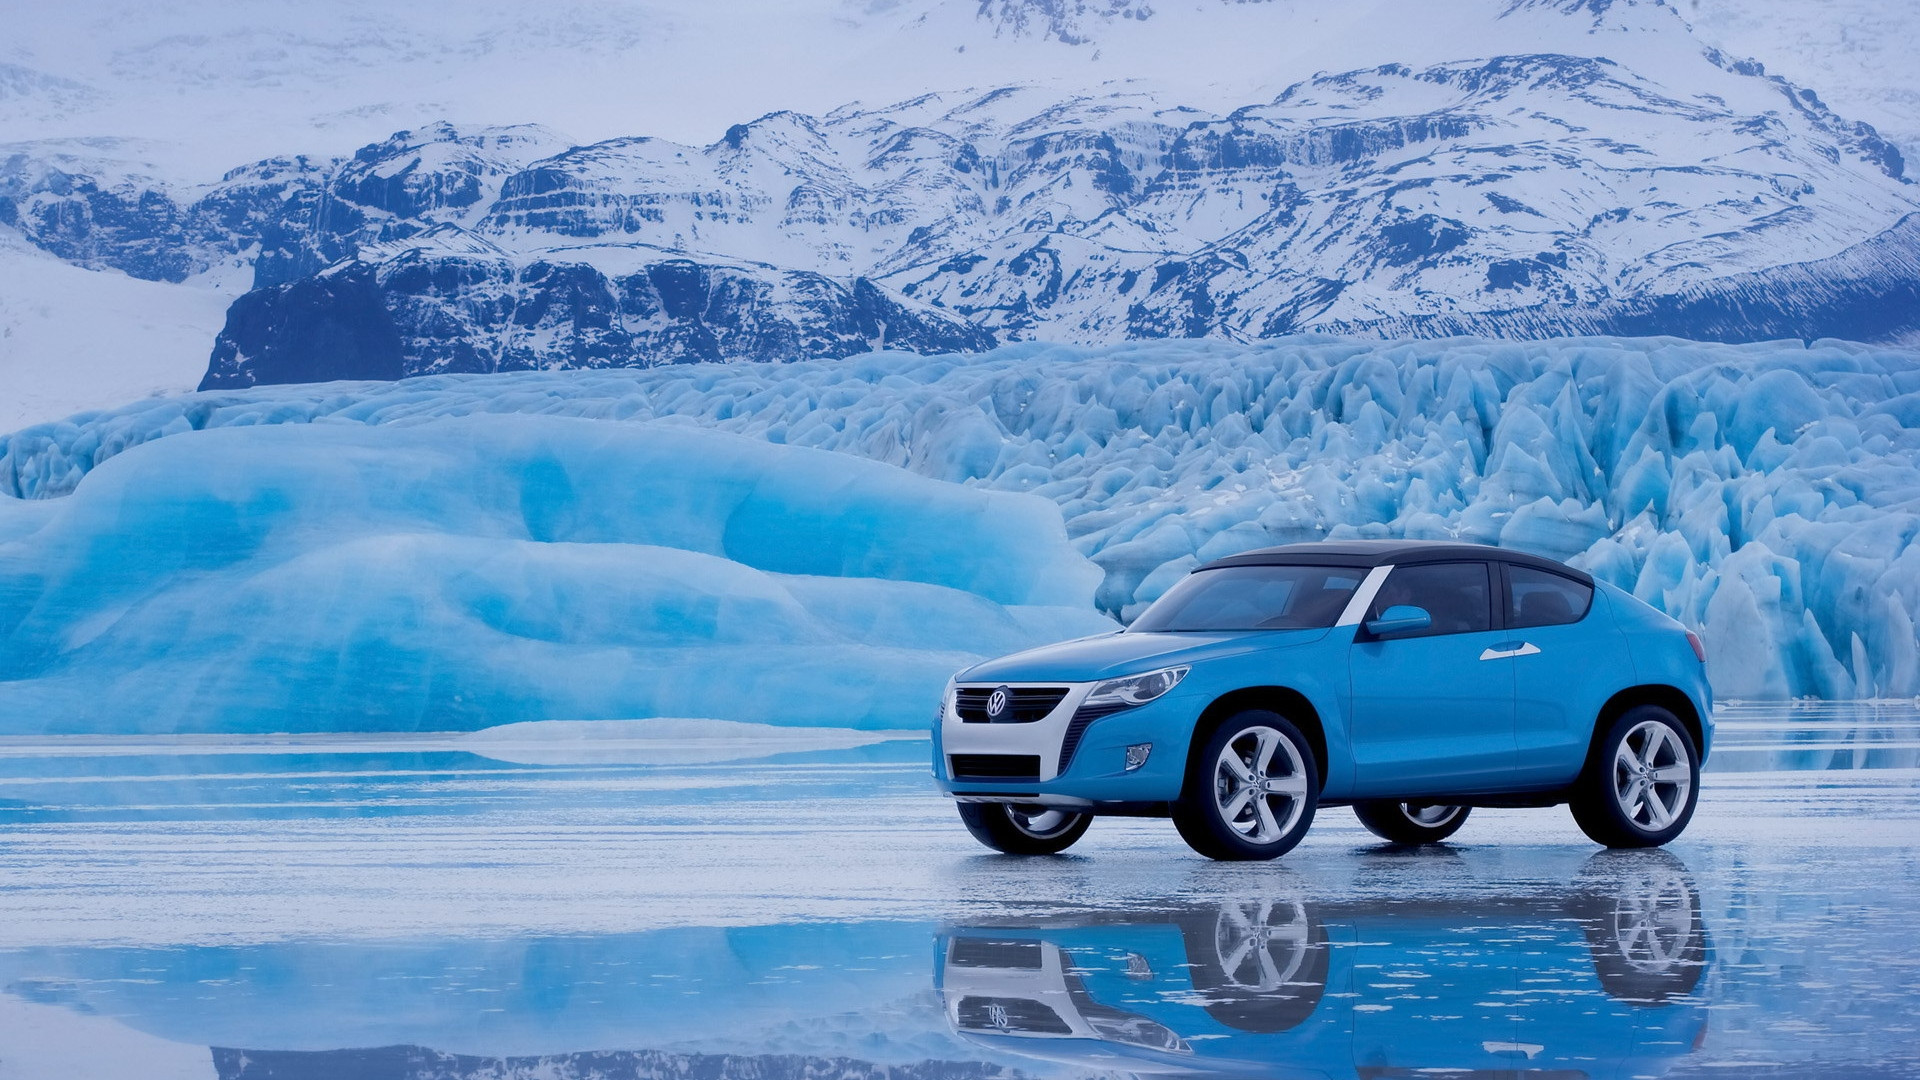 Awesome-Ice-And-Car-1920-1080-wallpaper-wpc5809946